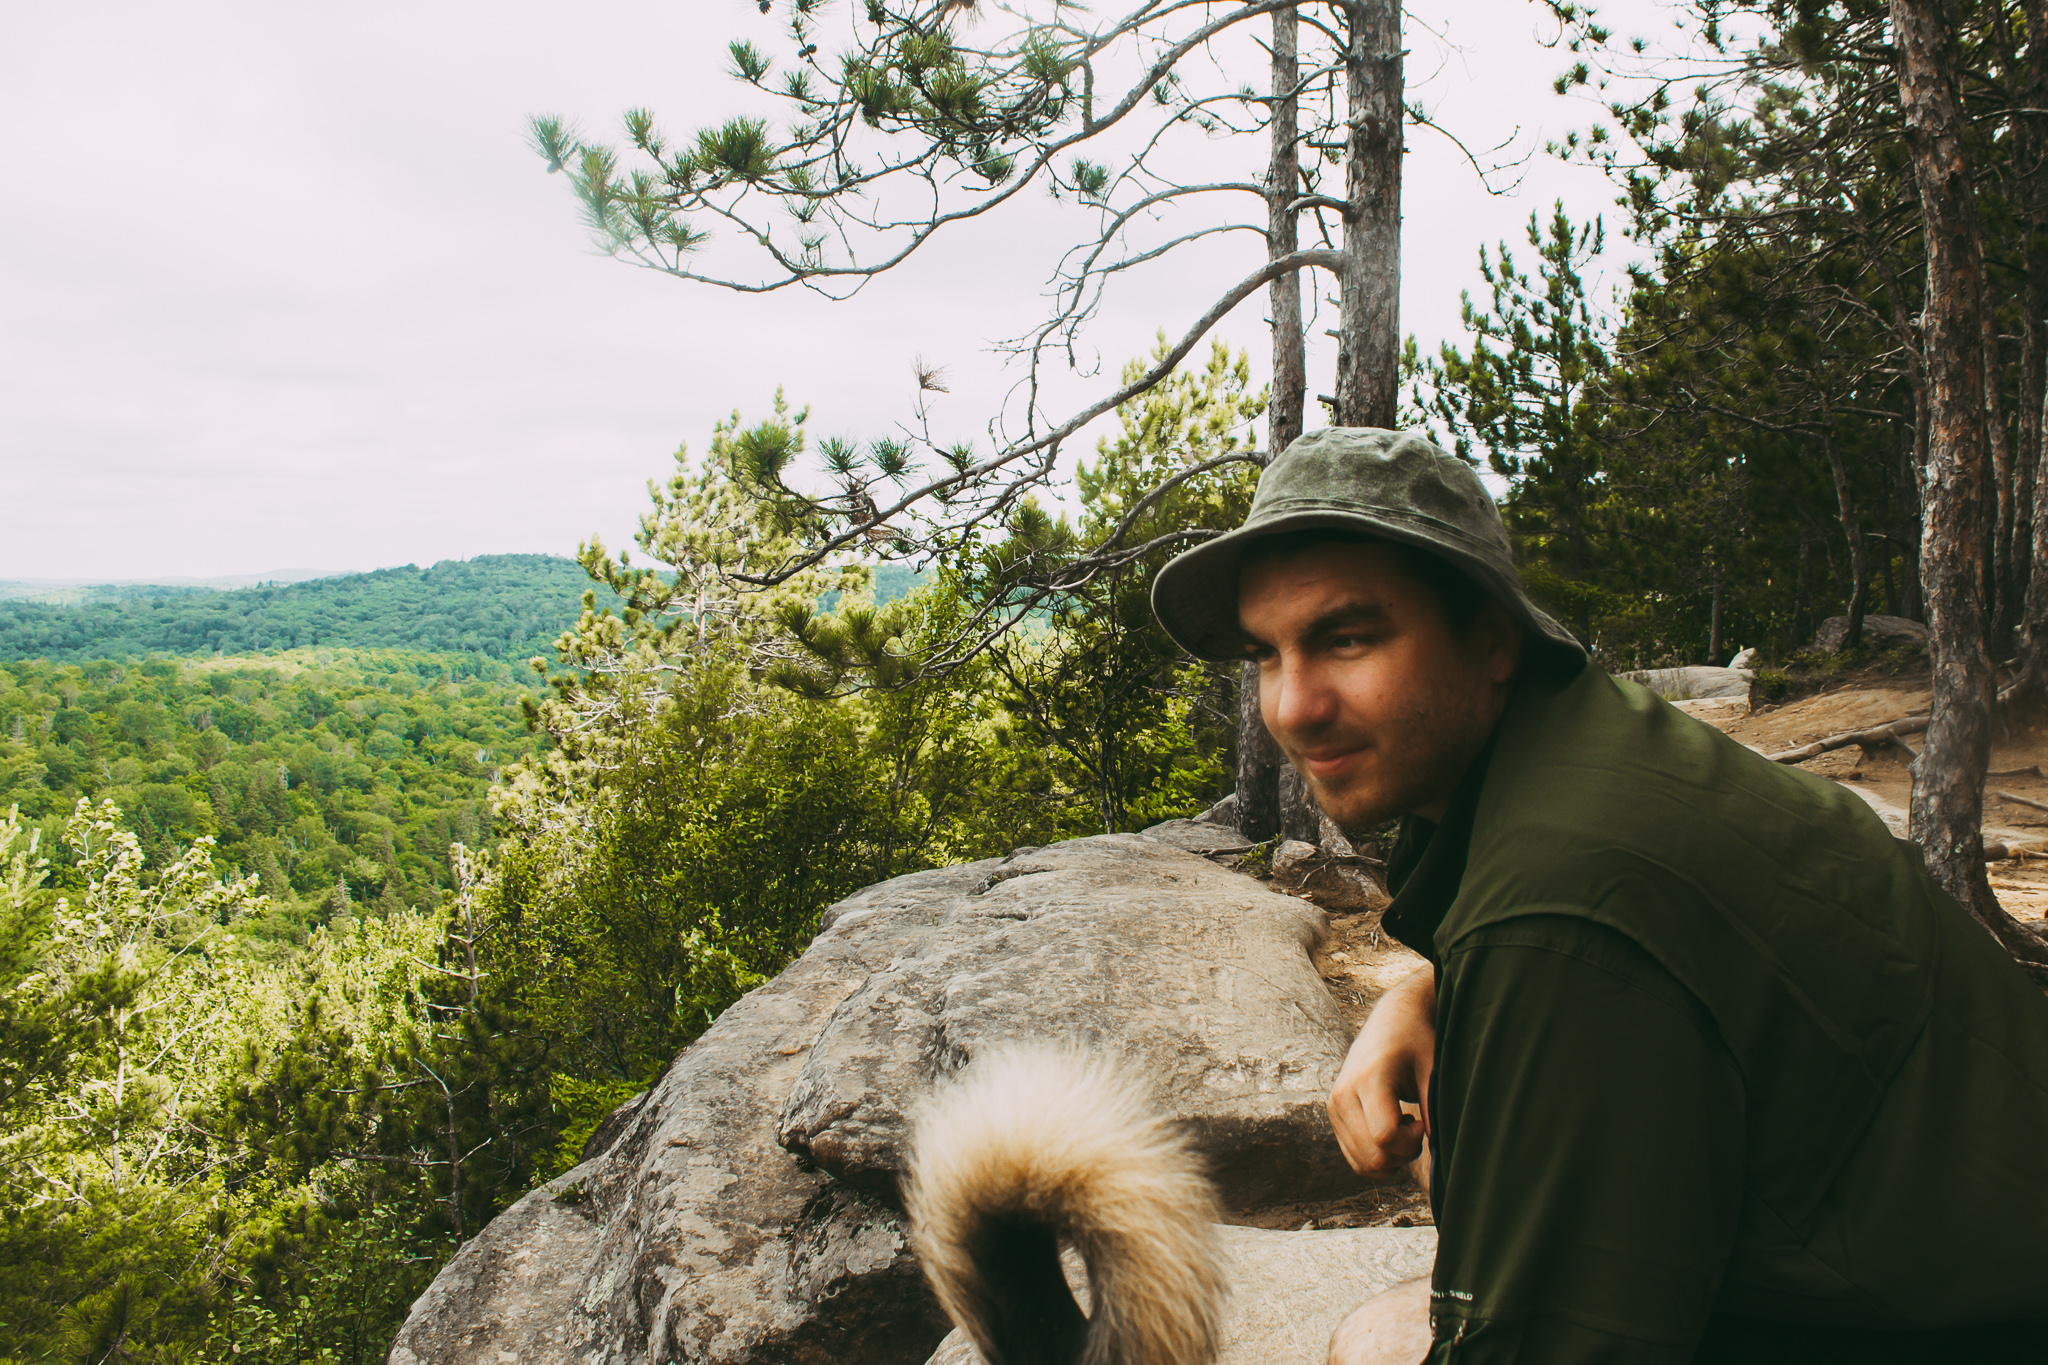 Lookout hike in Algonquin Park